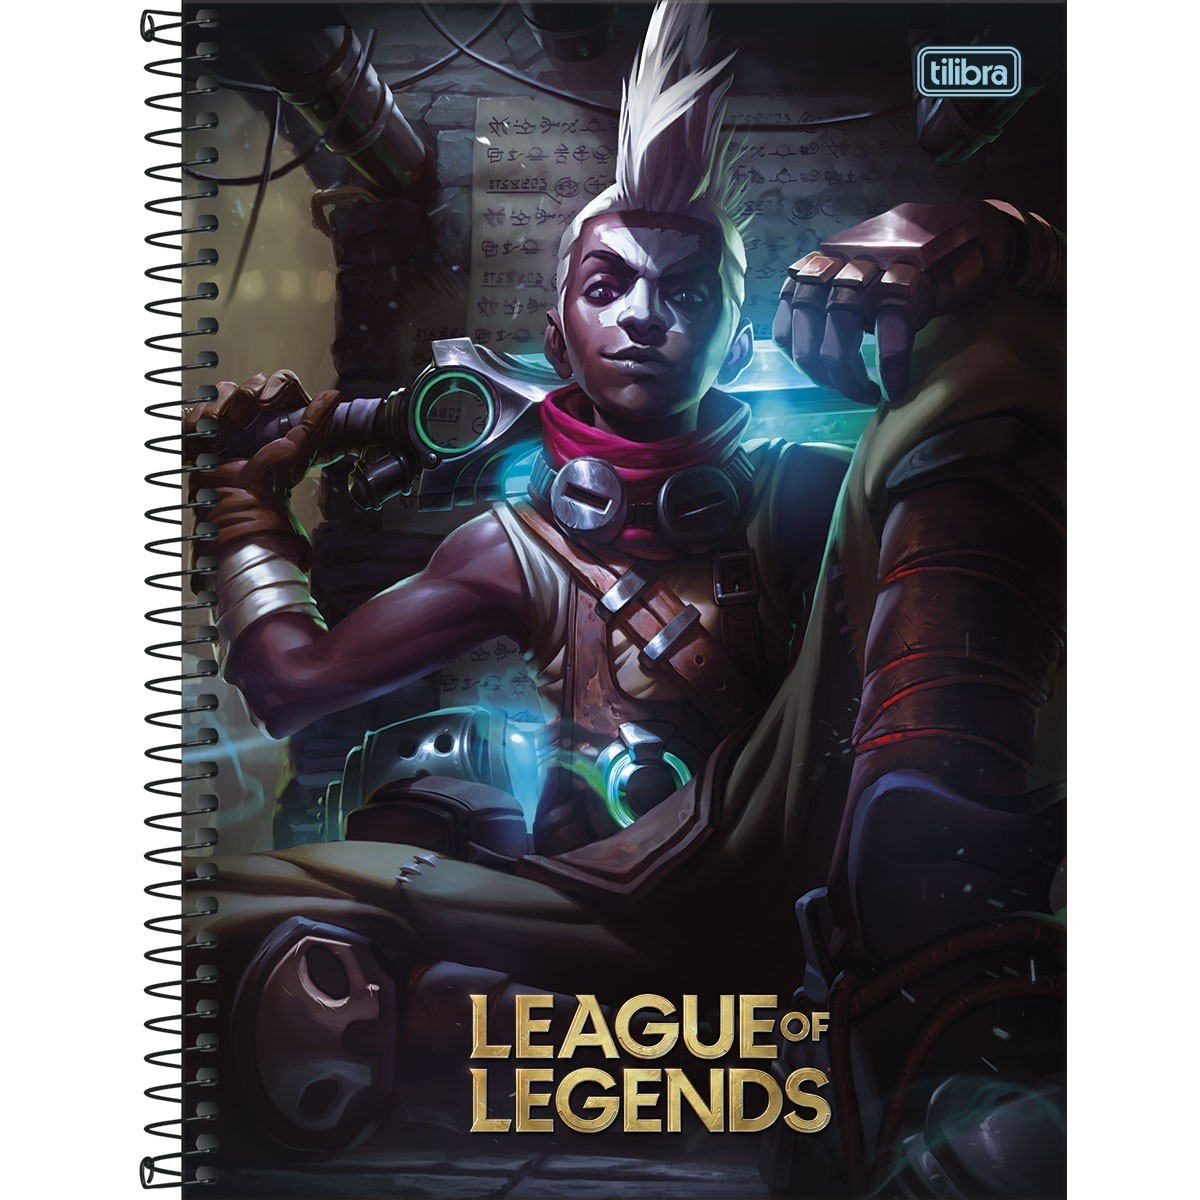 Caderno Espiral Capa Dura Universitário 12 Matérias League of Legends Ekko 240 Folhas